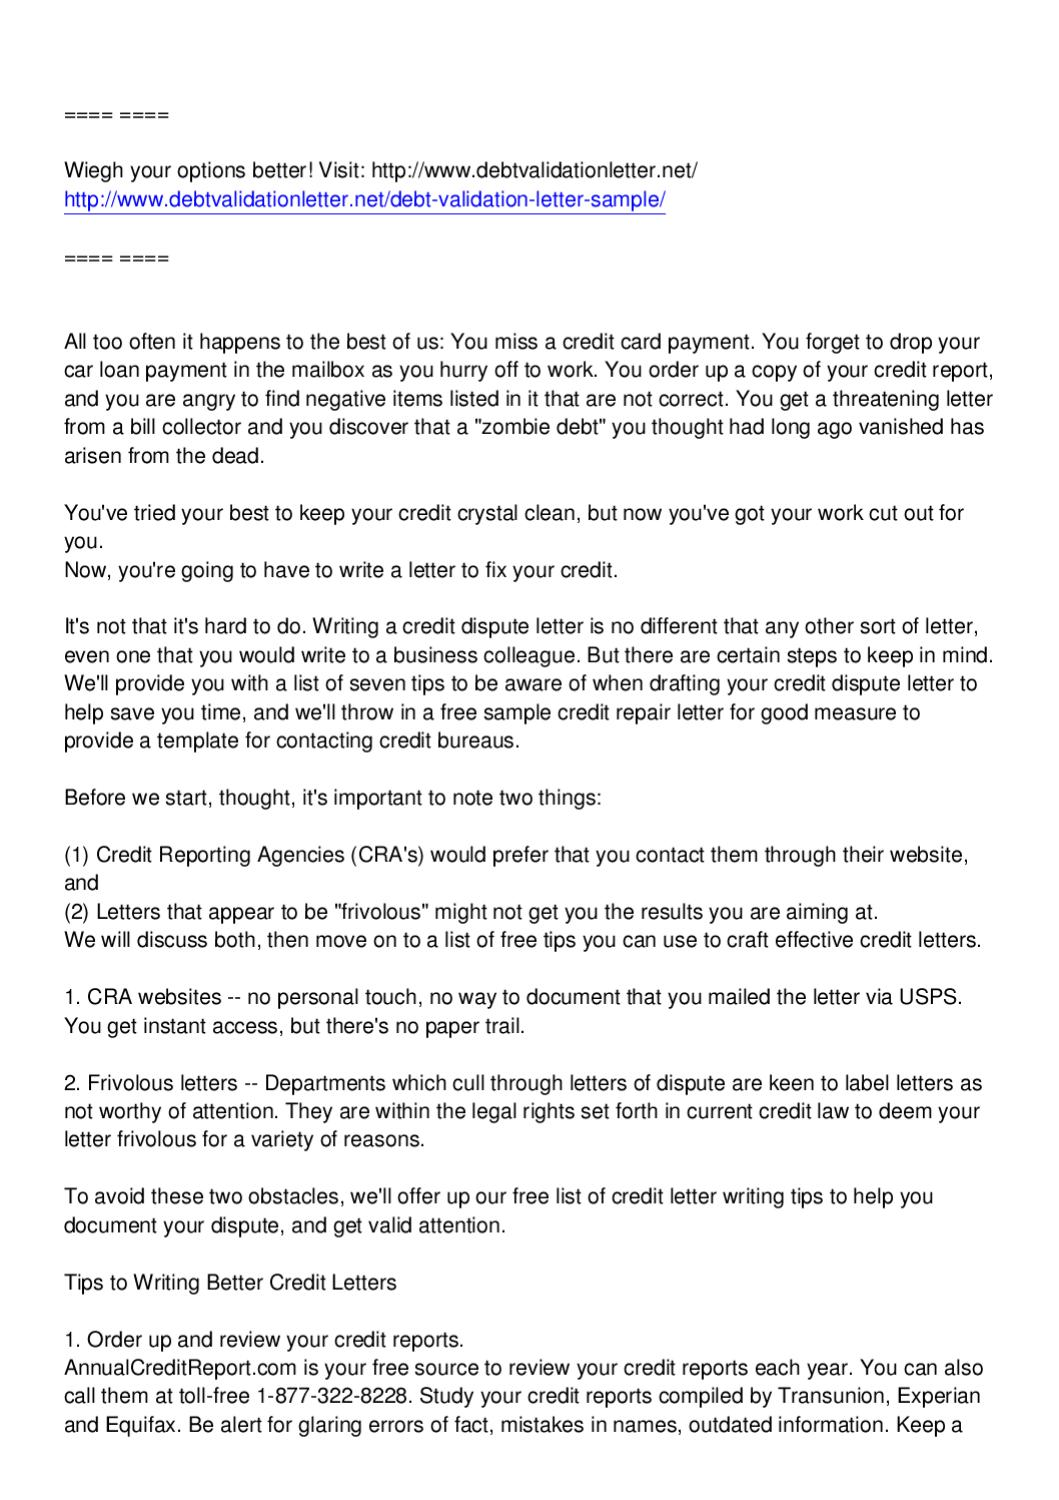 debt validation letter writing a debt validation letter by stella 21325 | page 1